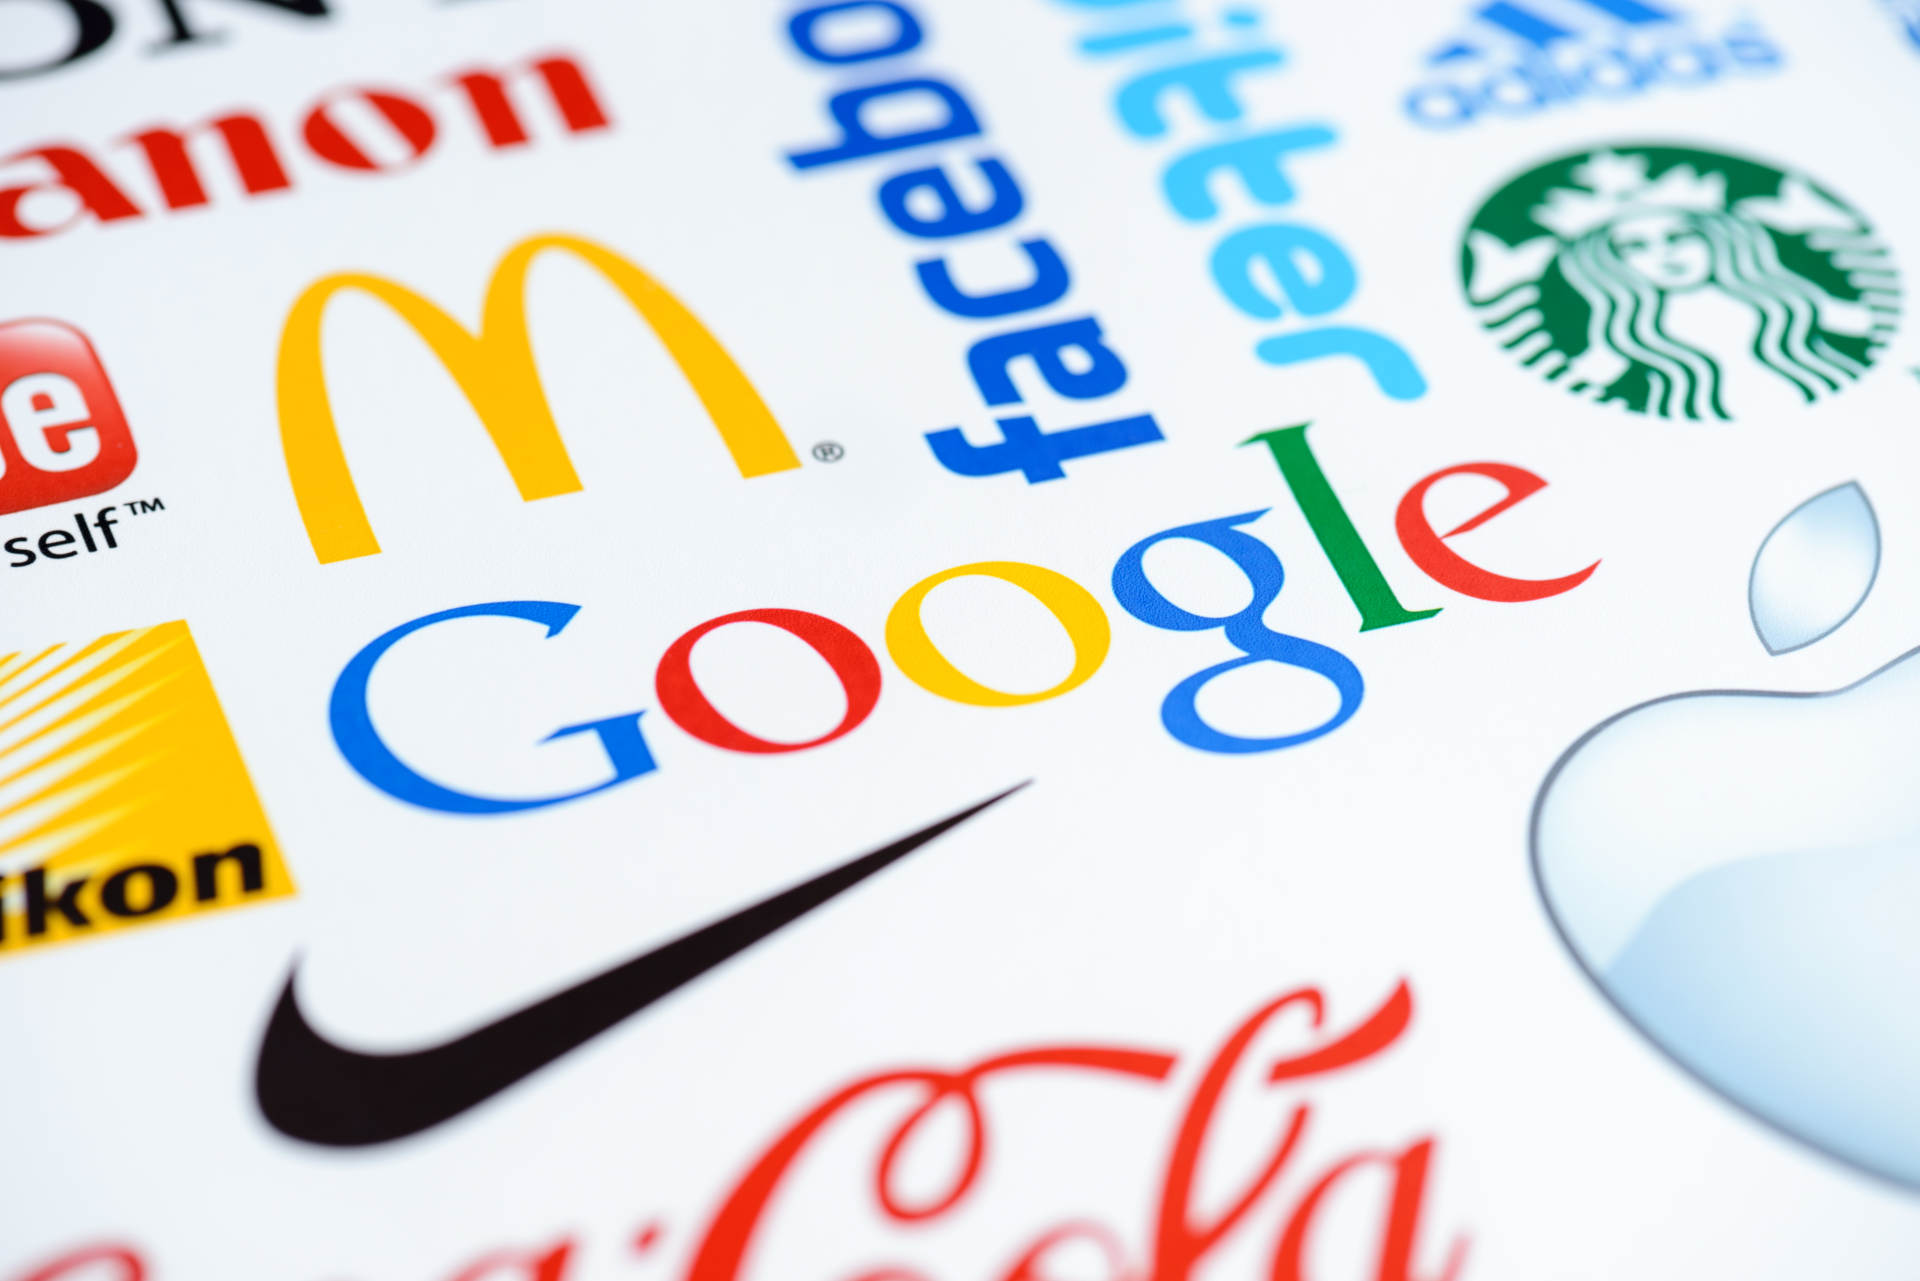 5 Reasons Why Popular Brand Logos Are so Successful